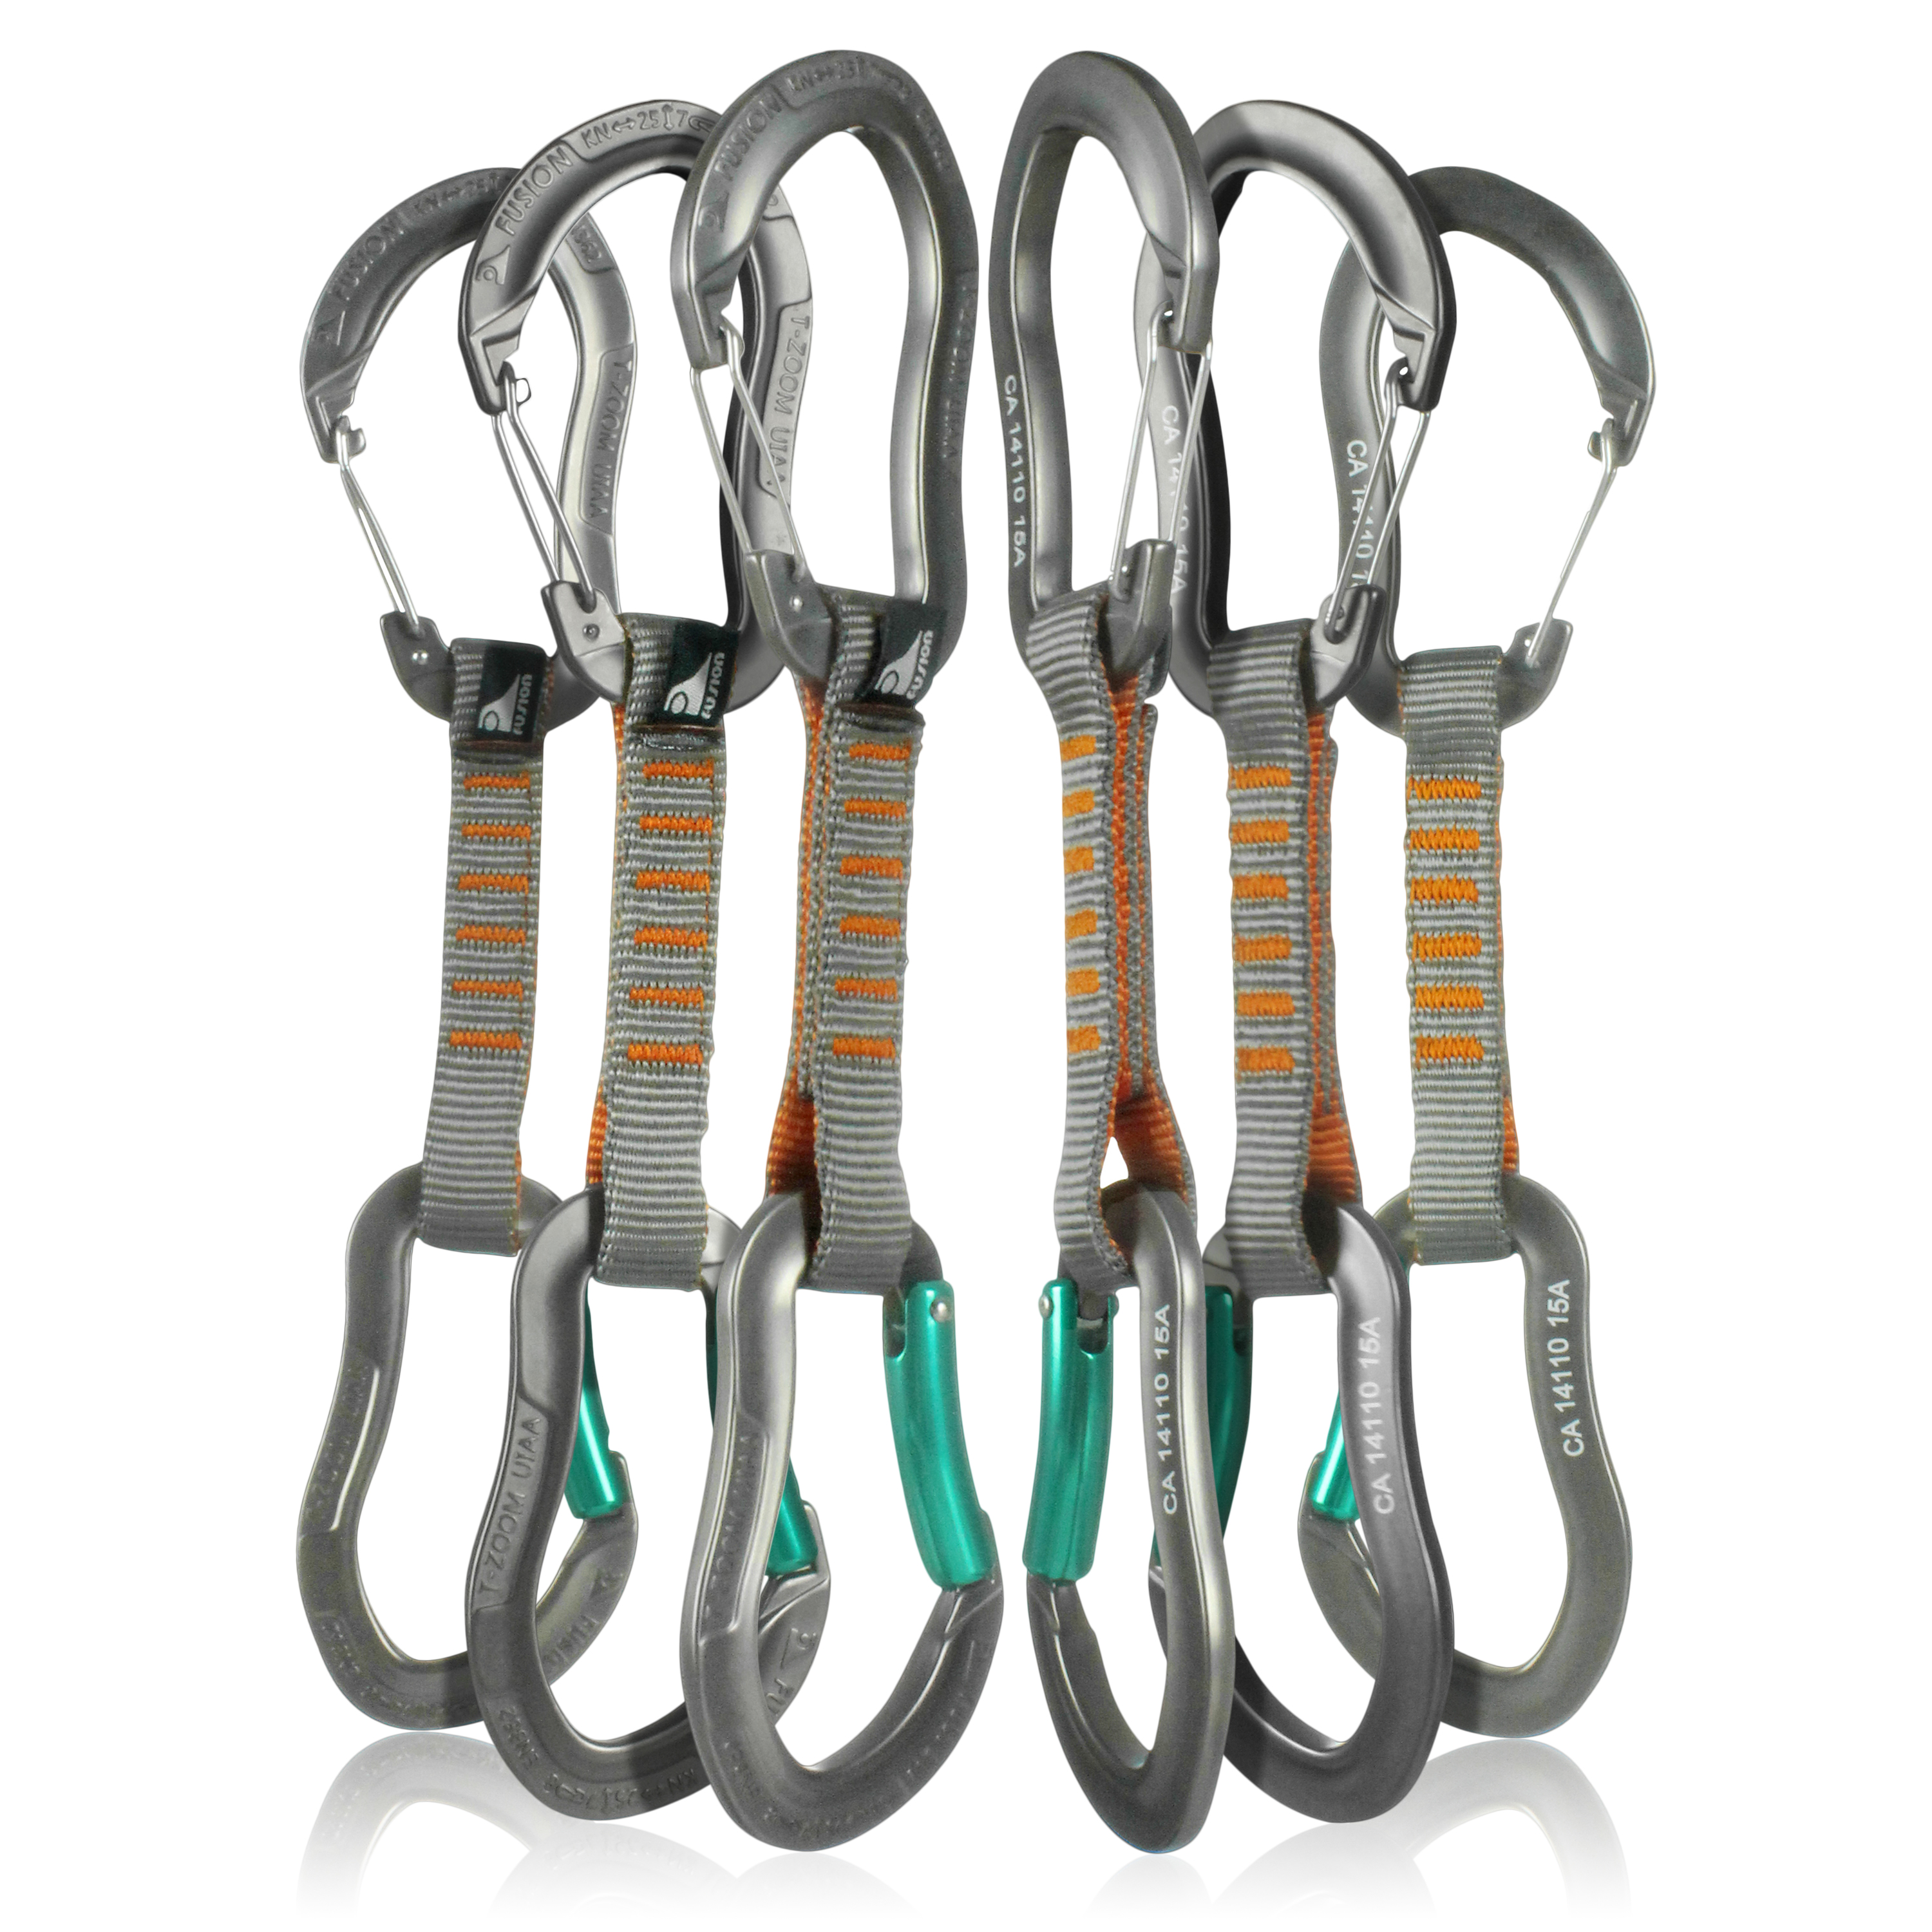 Fusion Climb 6-Pack 11cm Quickdraw Set with Techno Zoom Green Bent Gate Carabiner/Techno Zoom Gray Wire Gate Carabiner